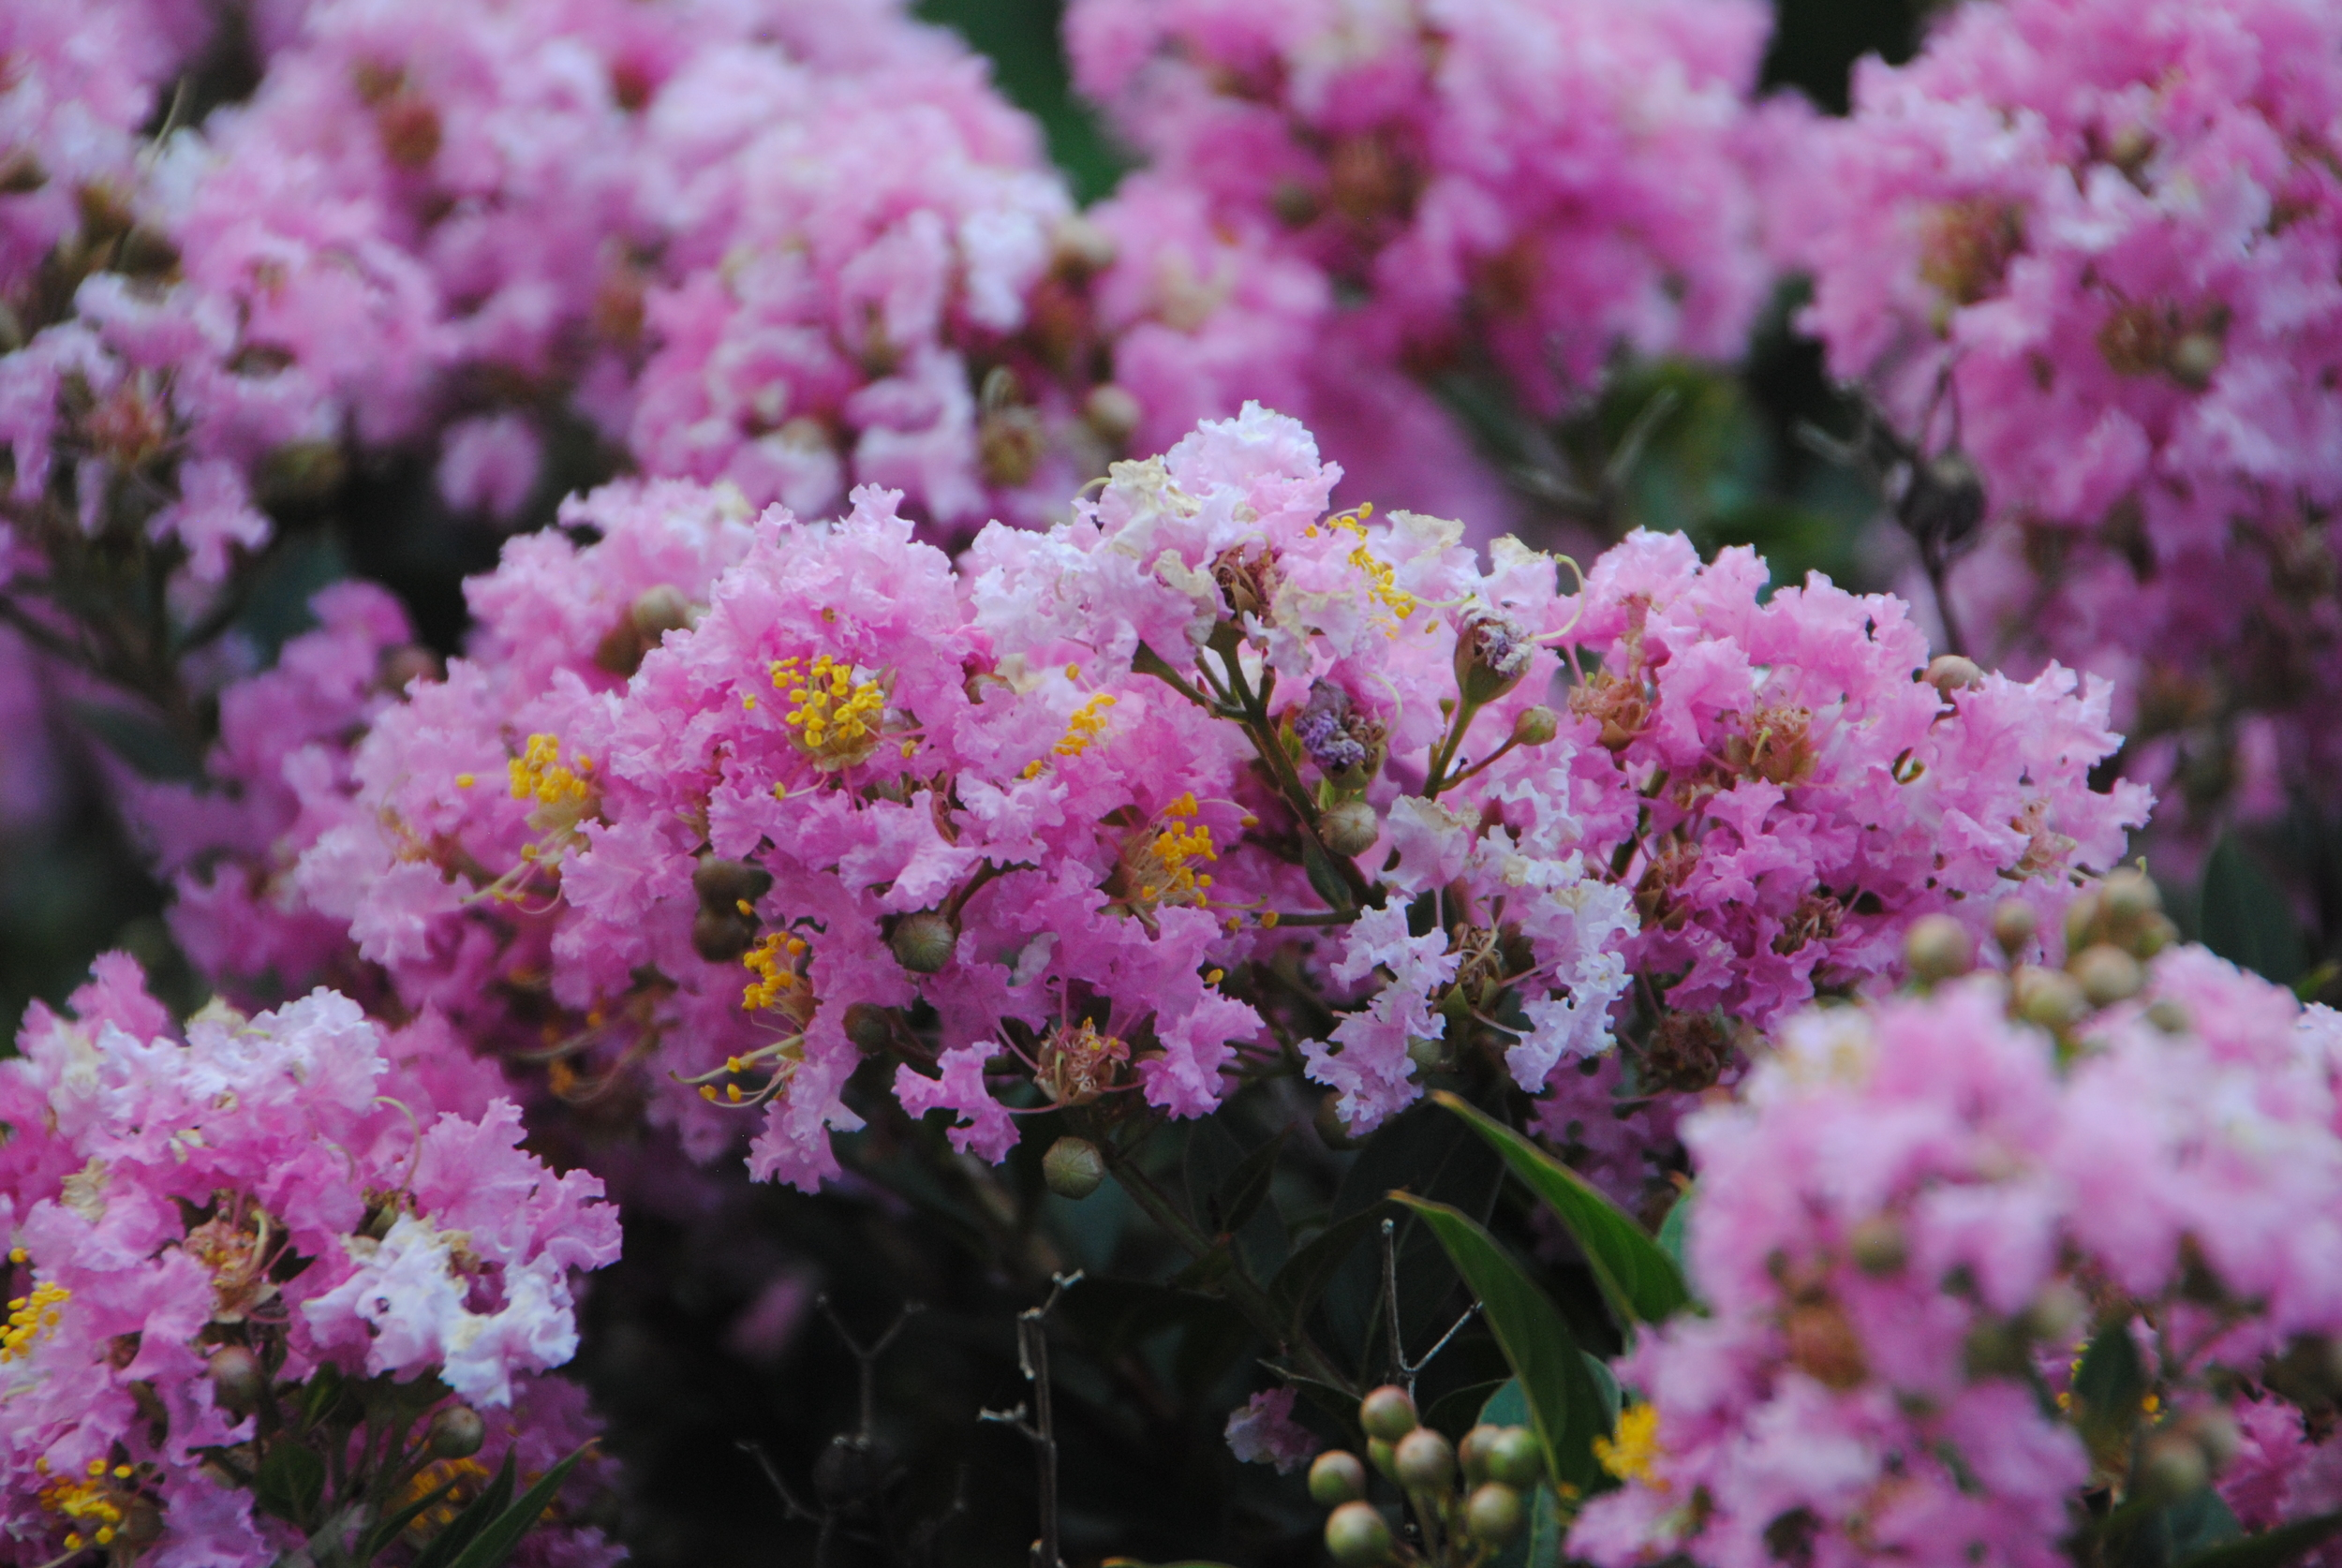 Masses of frothy pink flowers cover the plant like cotton candy.